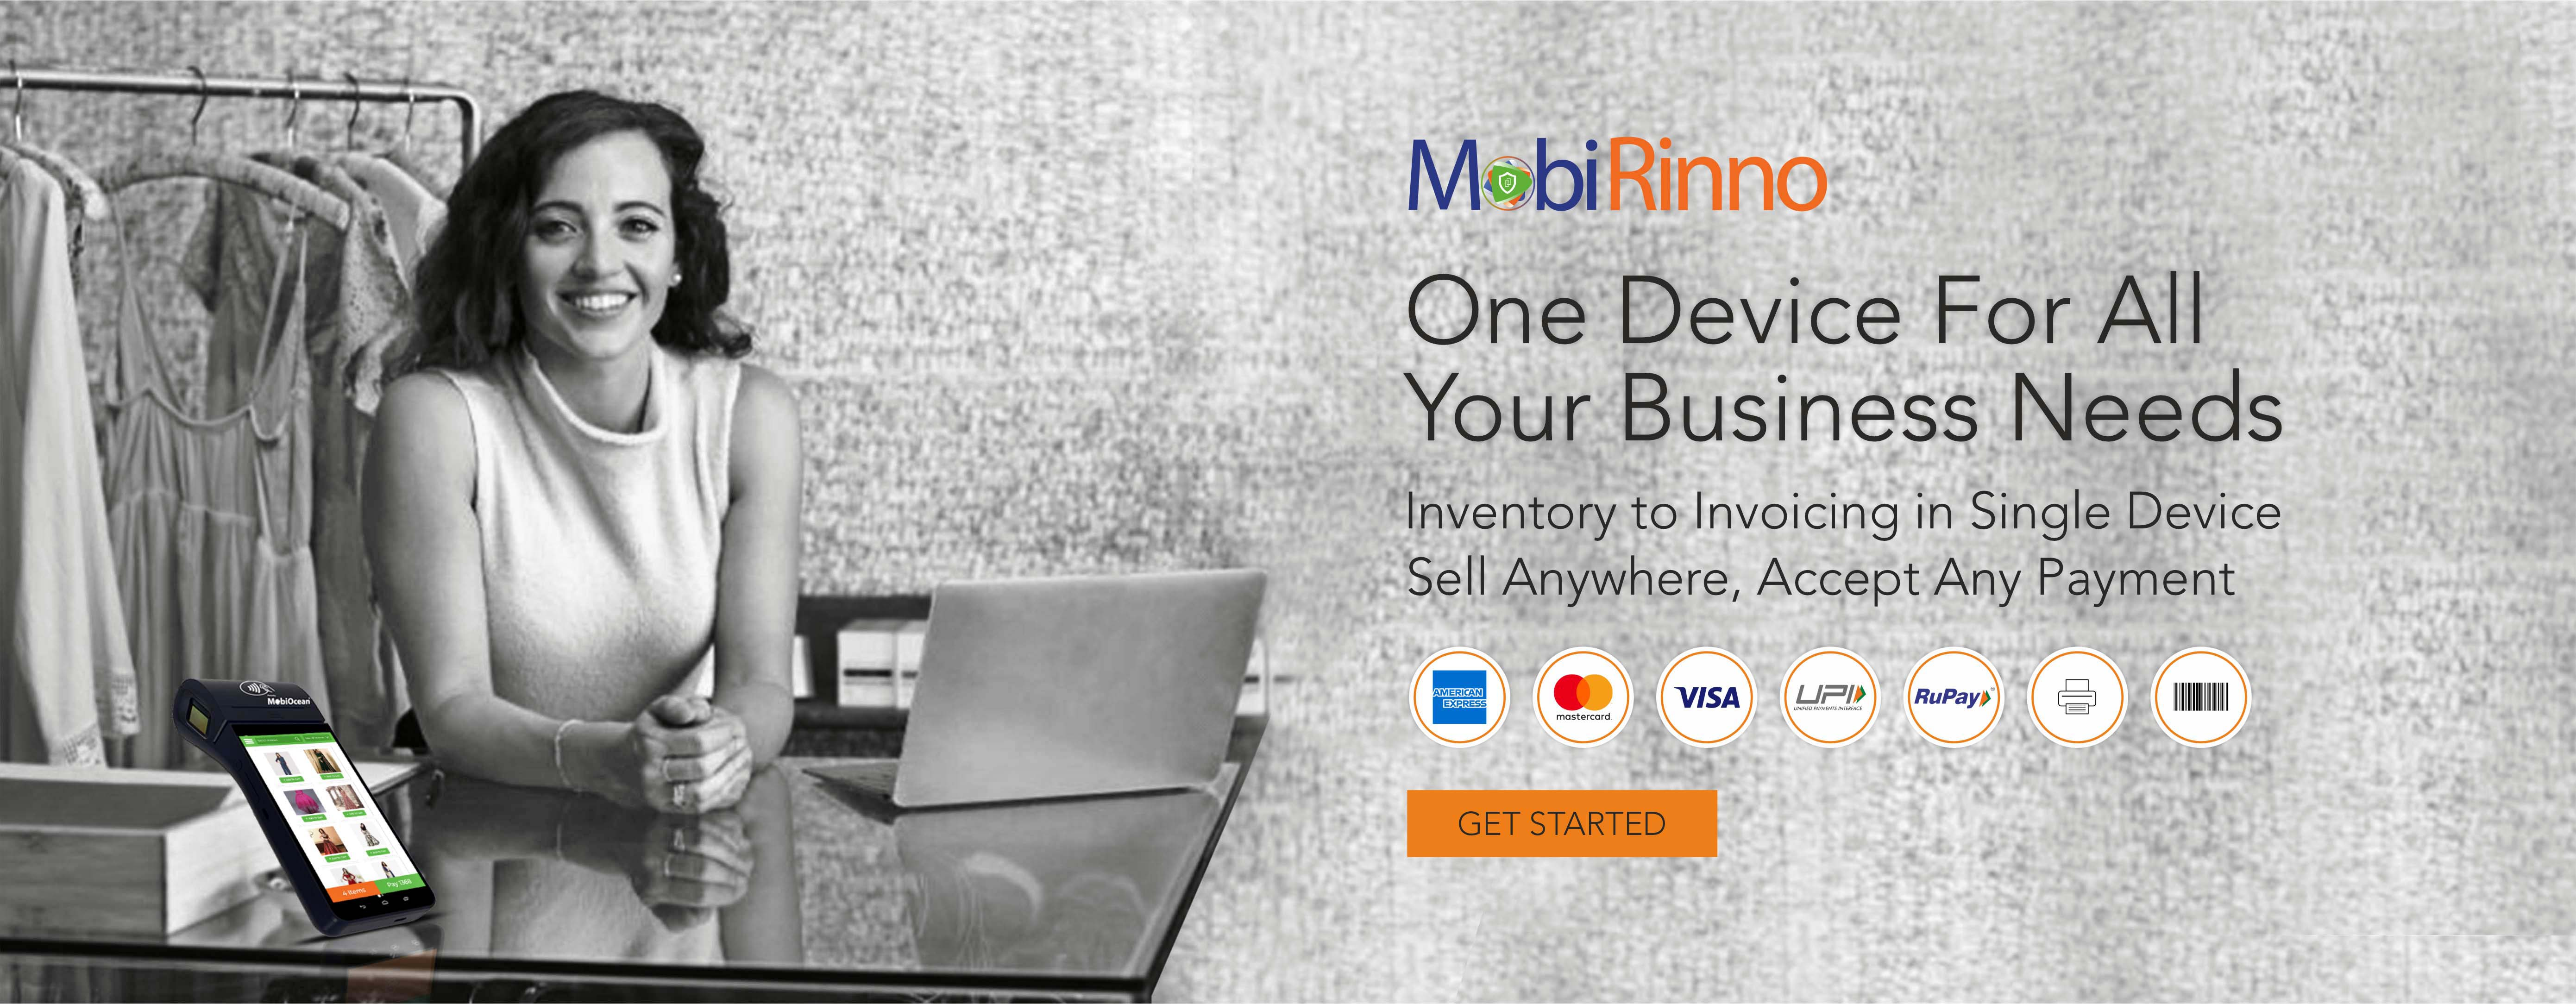 MobiRinno POS Software Solution | Android POS | Digital Payments